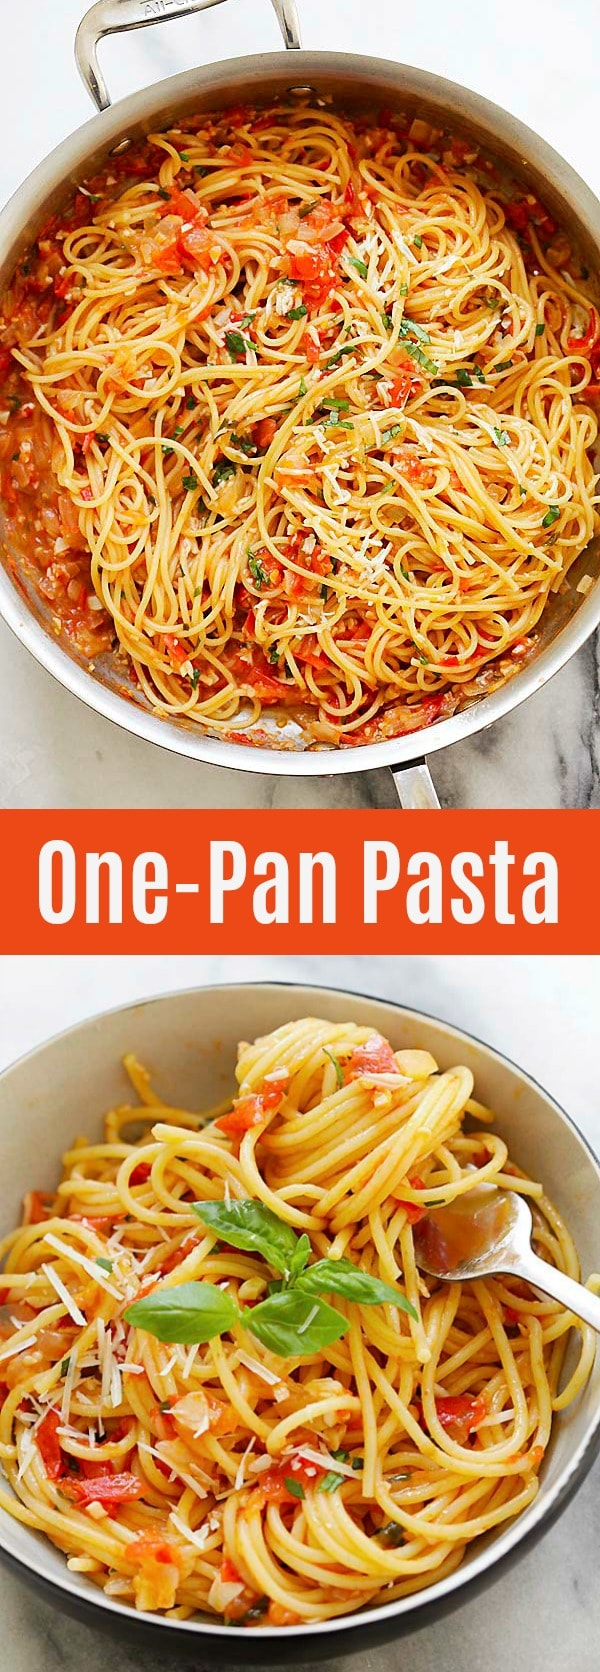 One-Pan Pasta - Quick and easy pasta recipe that takes 20 minutes to make. Throw all the ingredients in the pan and dinner is ready for the entire family!